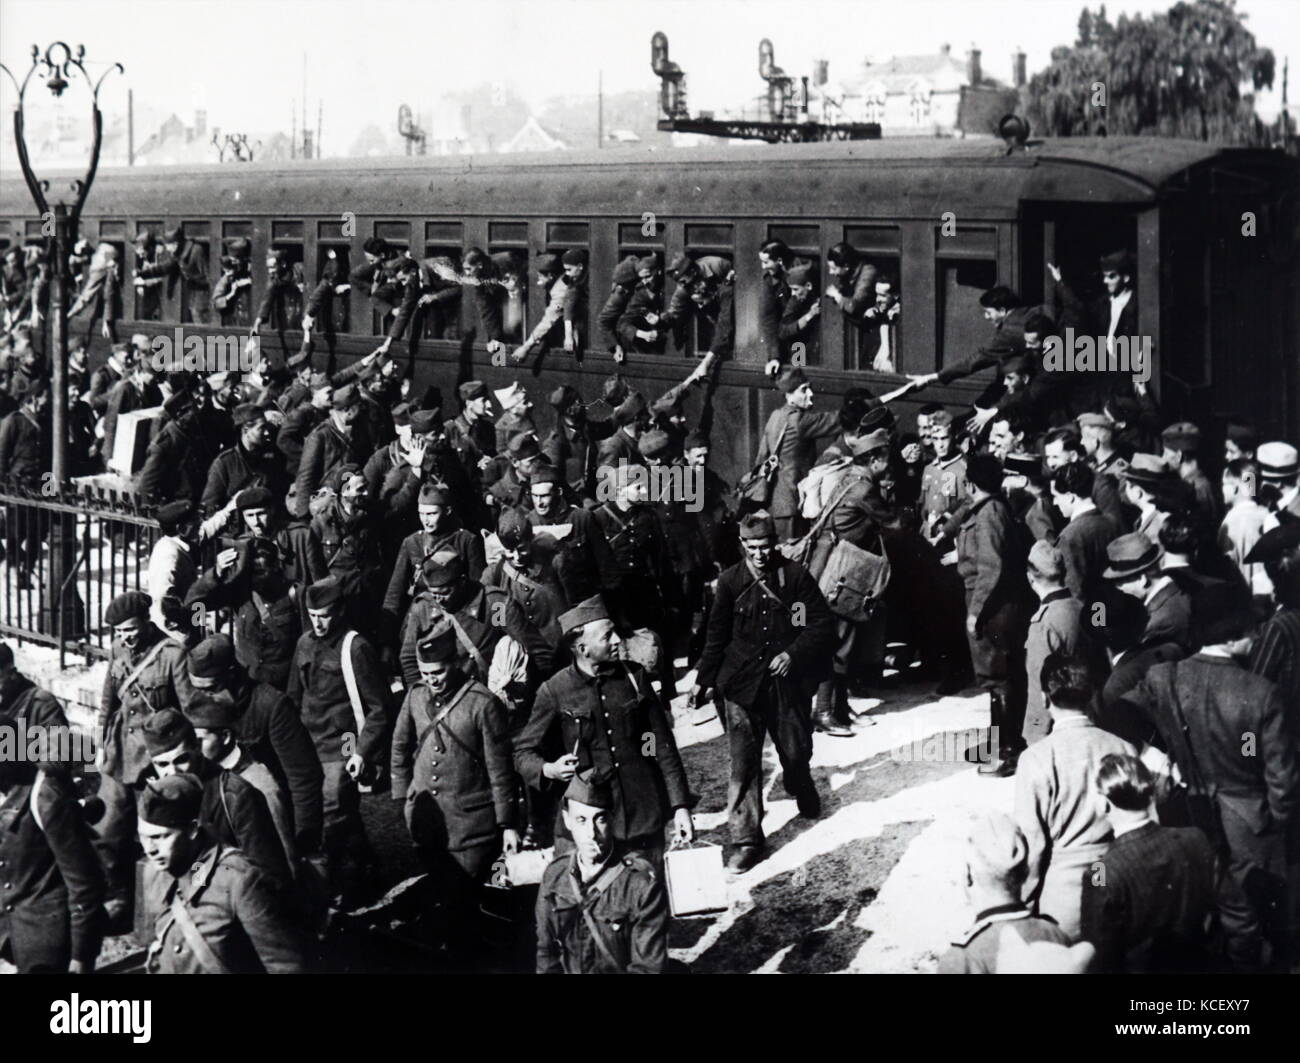 Photograph of World War Two French prisoners of war released under German occupation in France - Stock Image